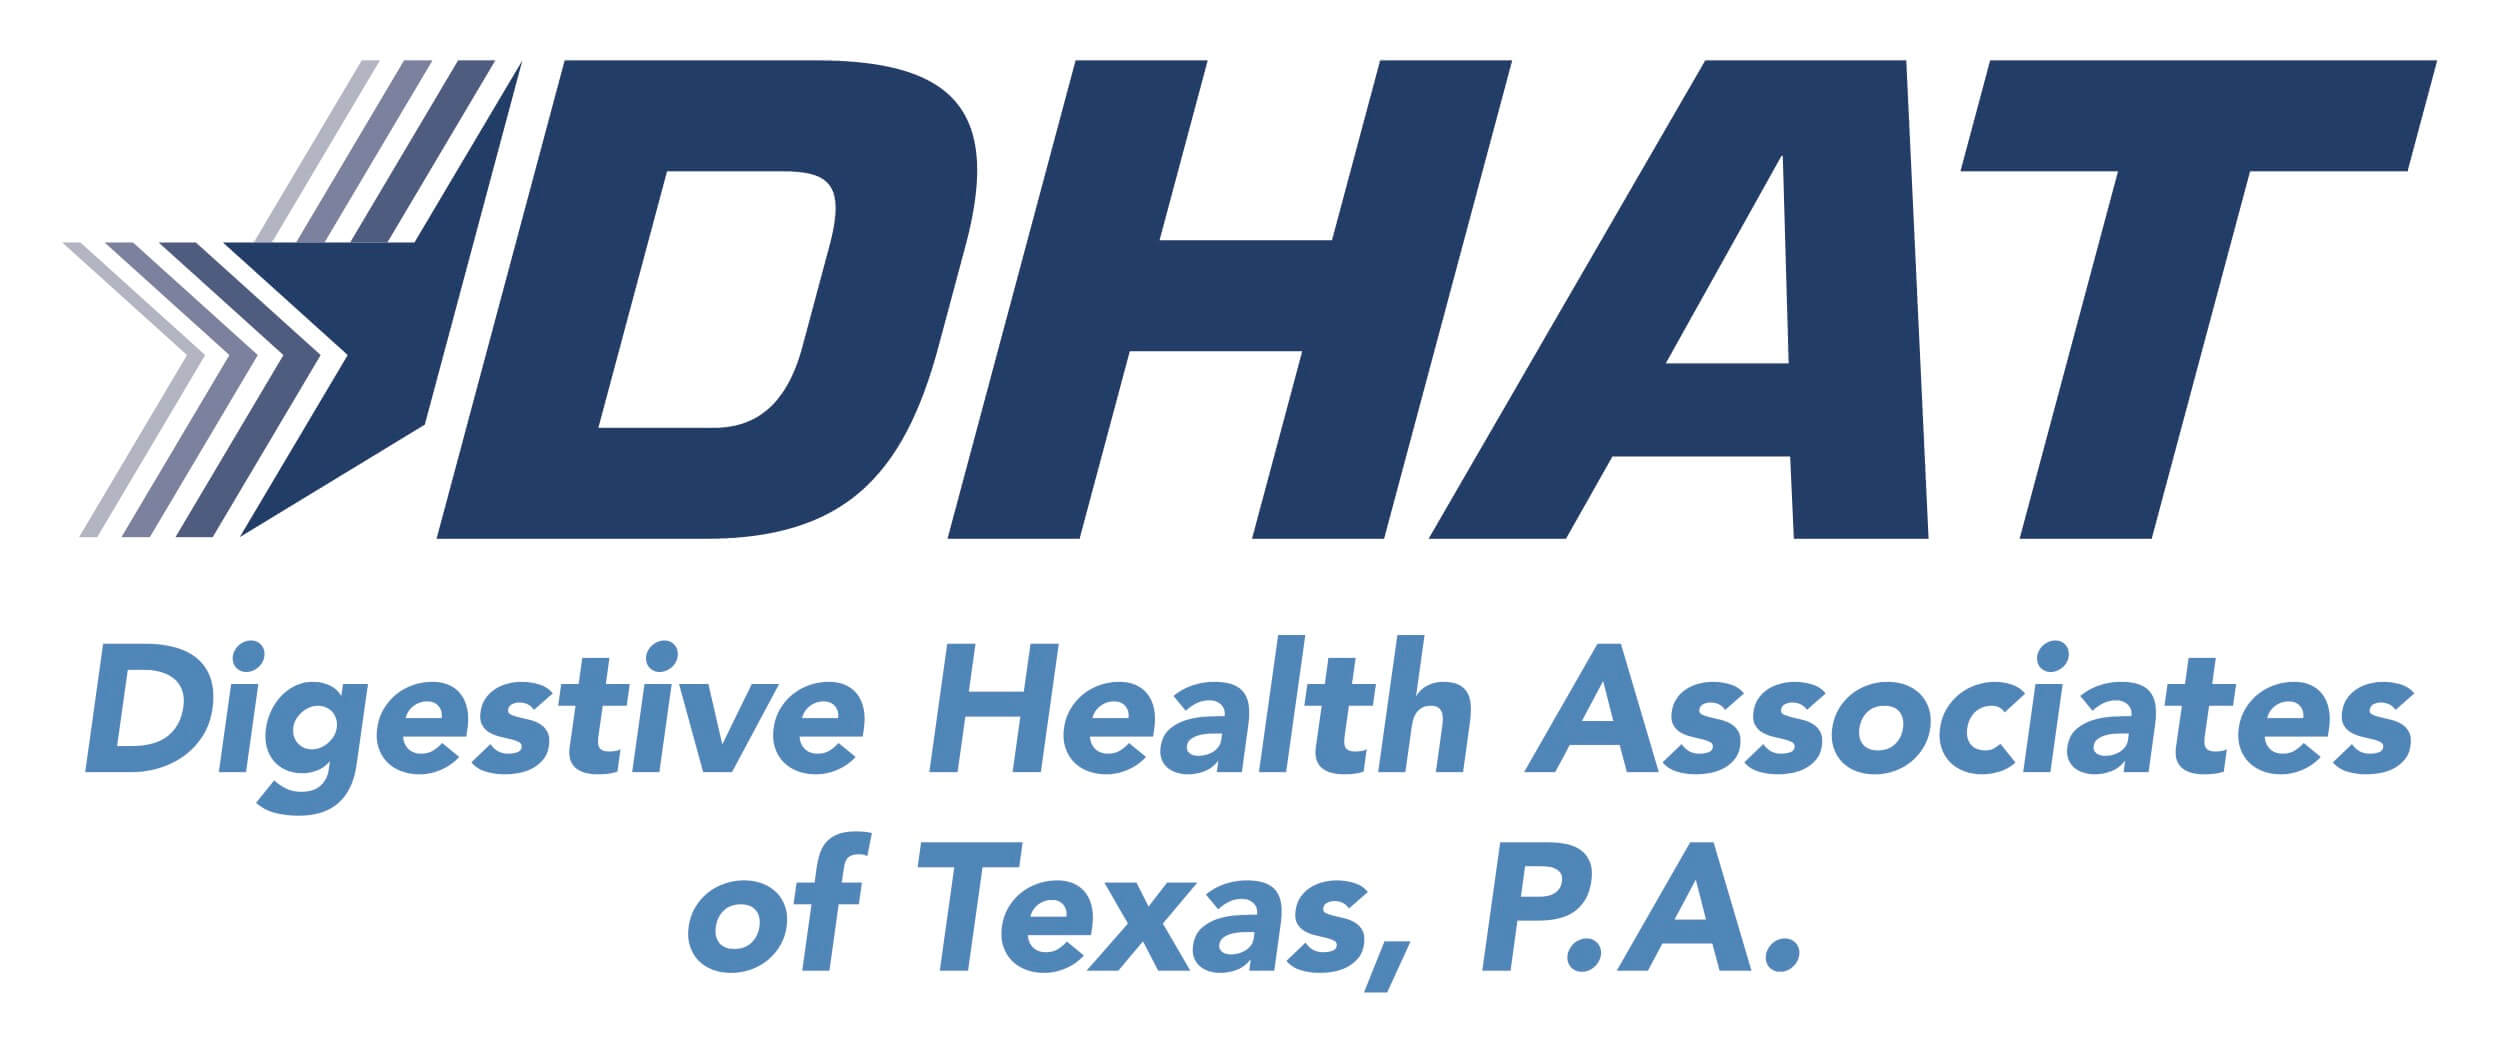 Digestive Health Associates of Texas, P.A.